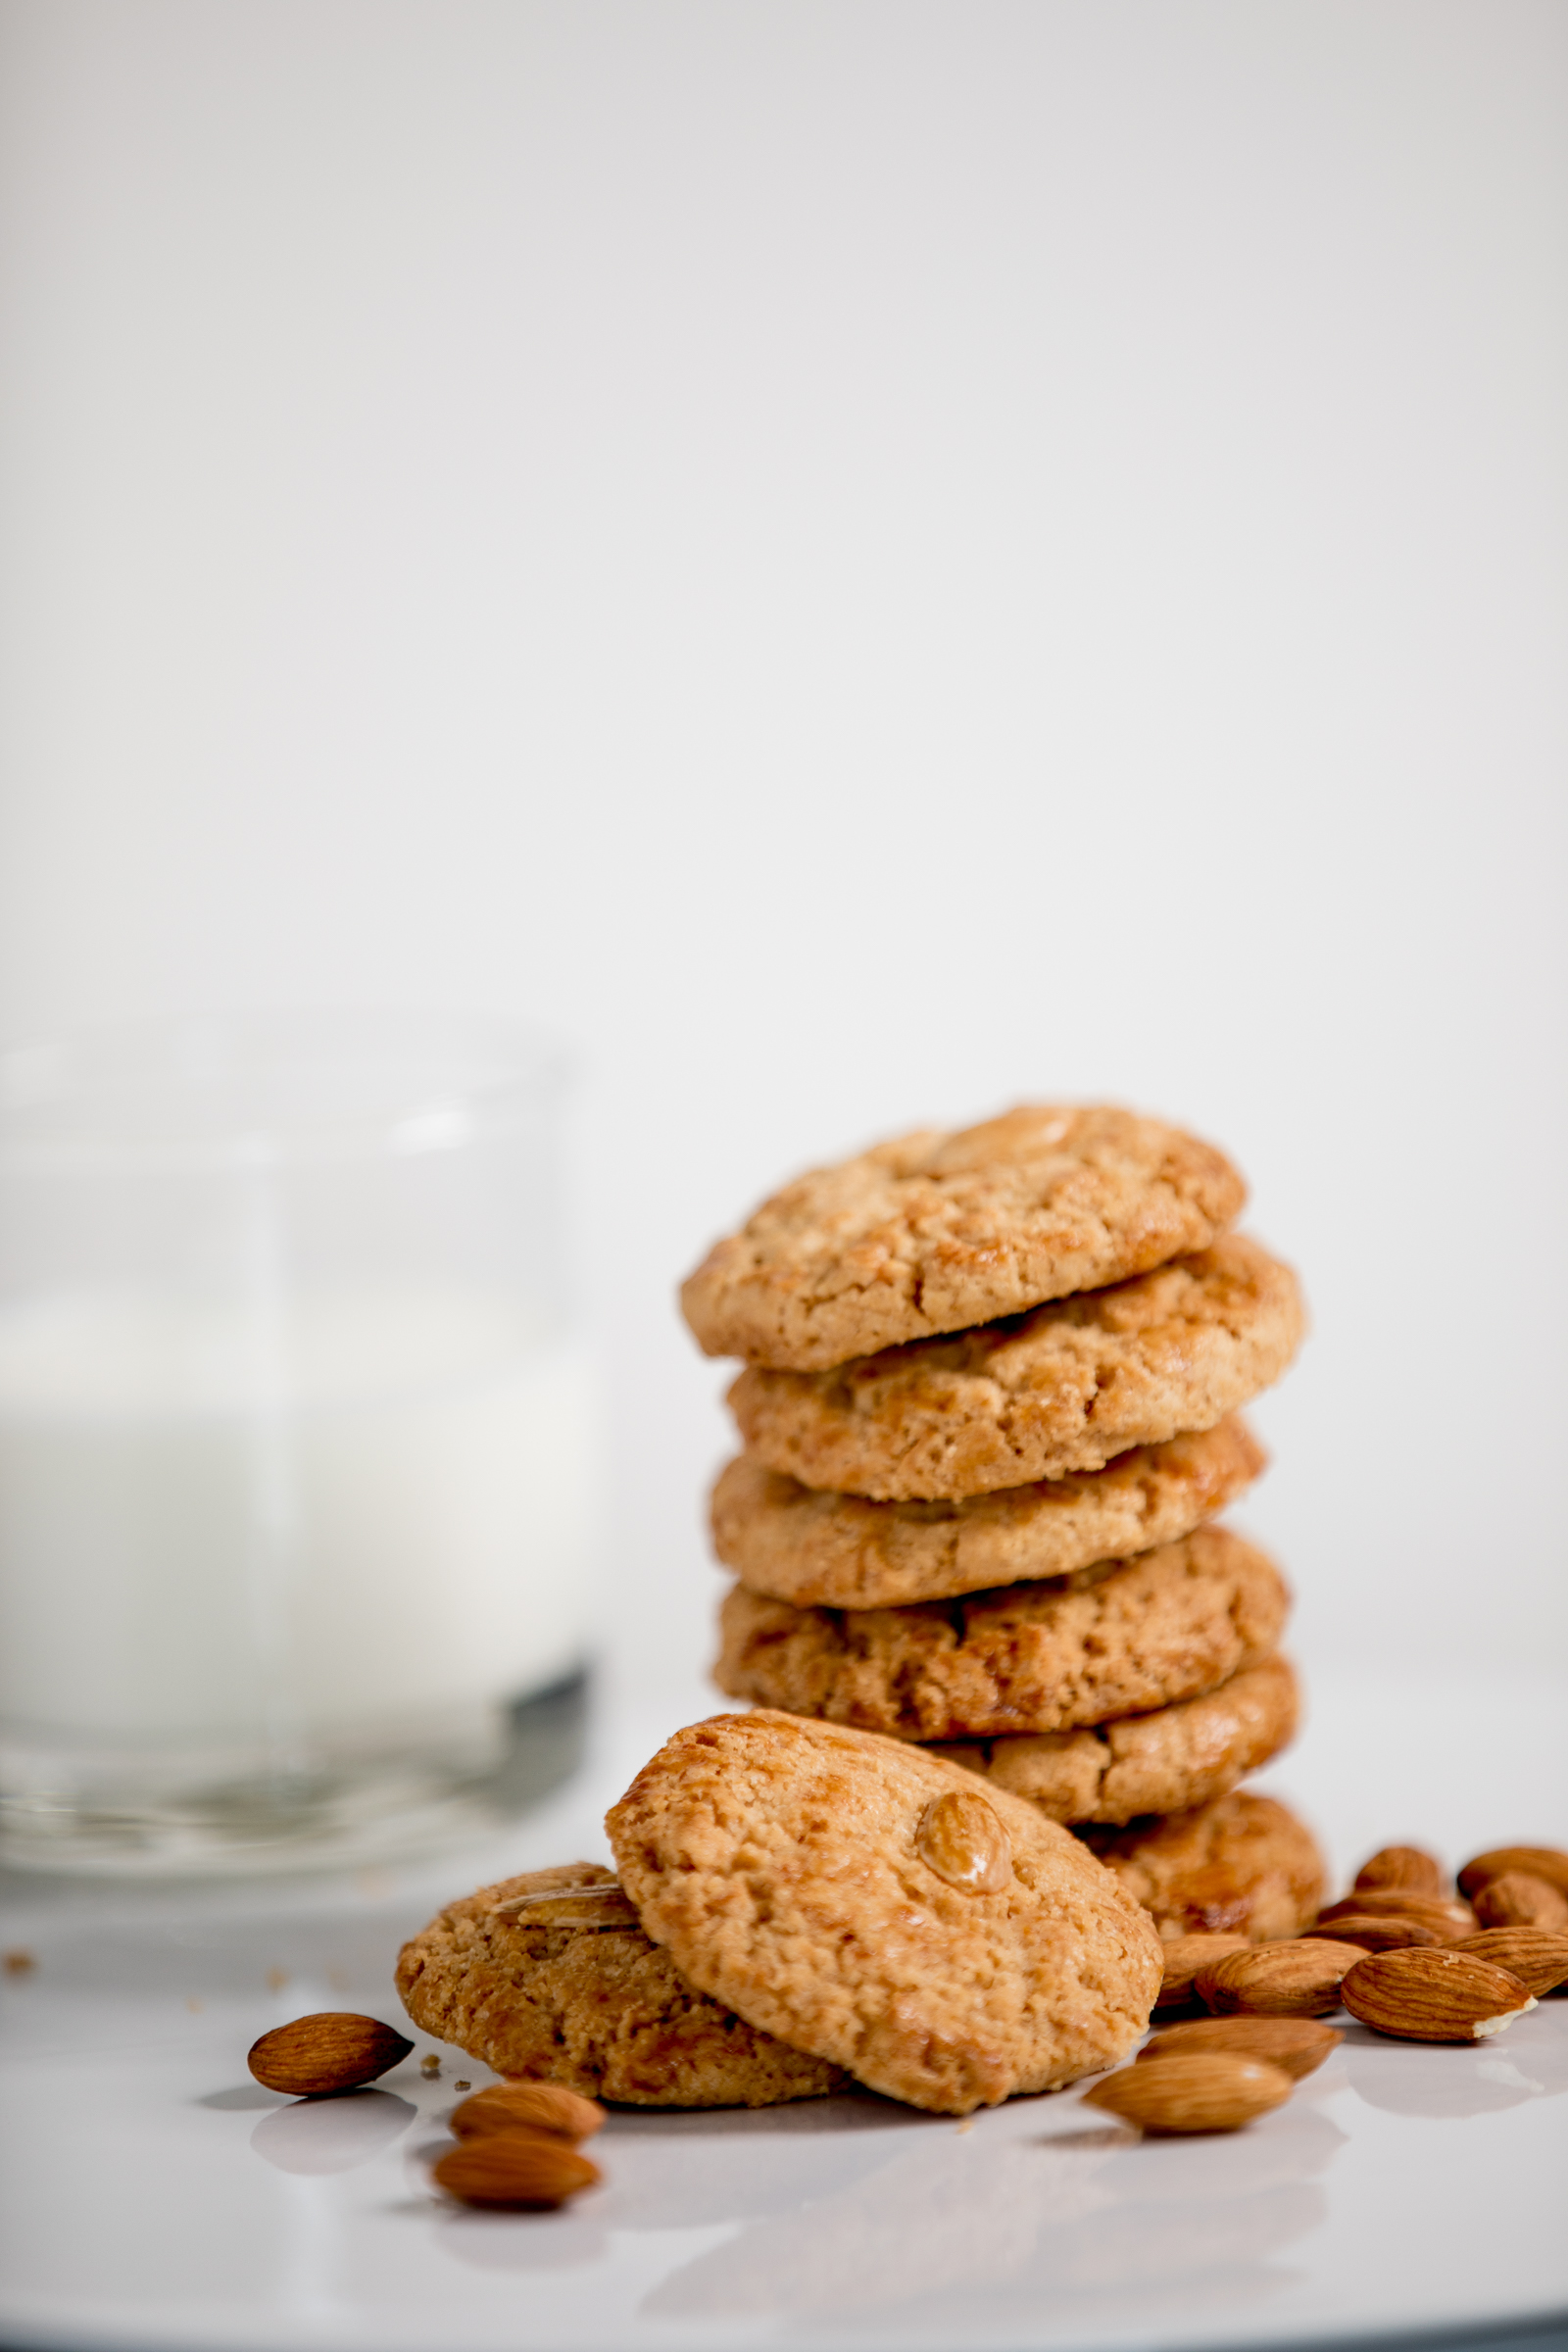 The Original Sweet....our Almond Cookie